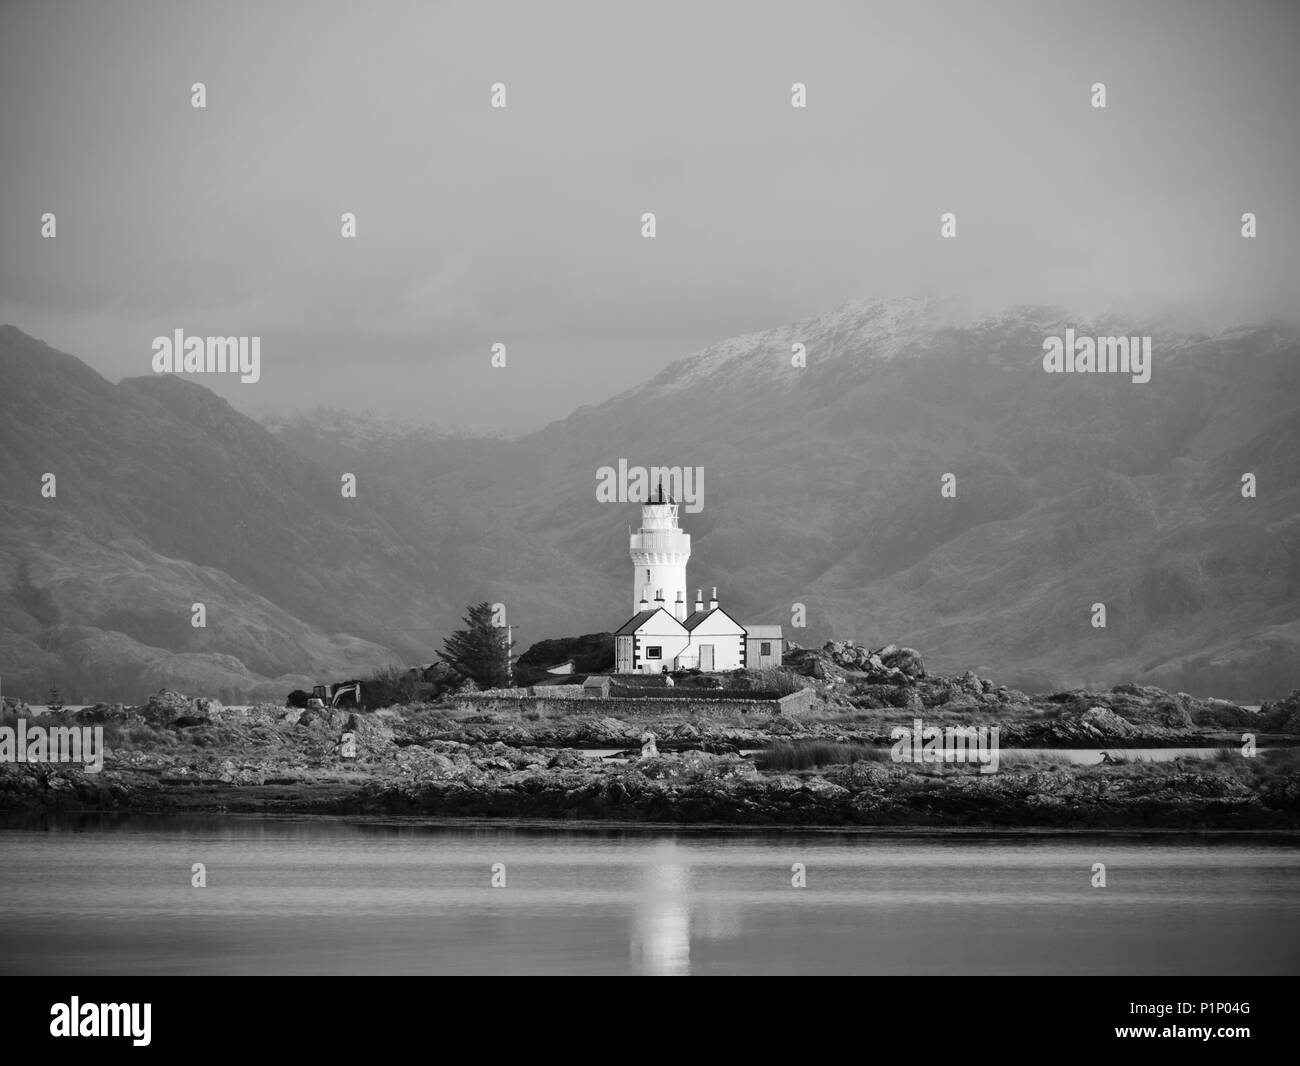 Iasle Ornsay Lighthouse built on a small islet  located on the ferry route. Low level of smooth water. Snowy mountain peaks hidden in cloudy backgroun - Stock Image